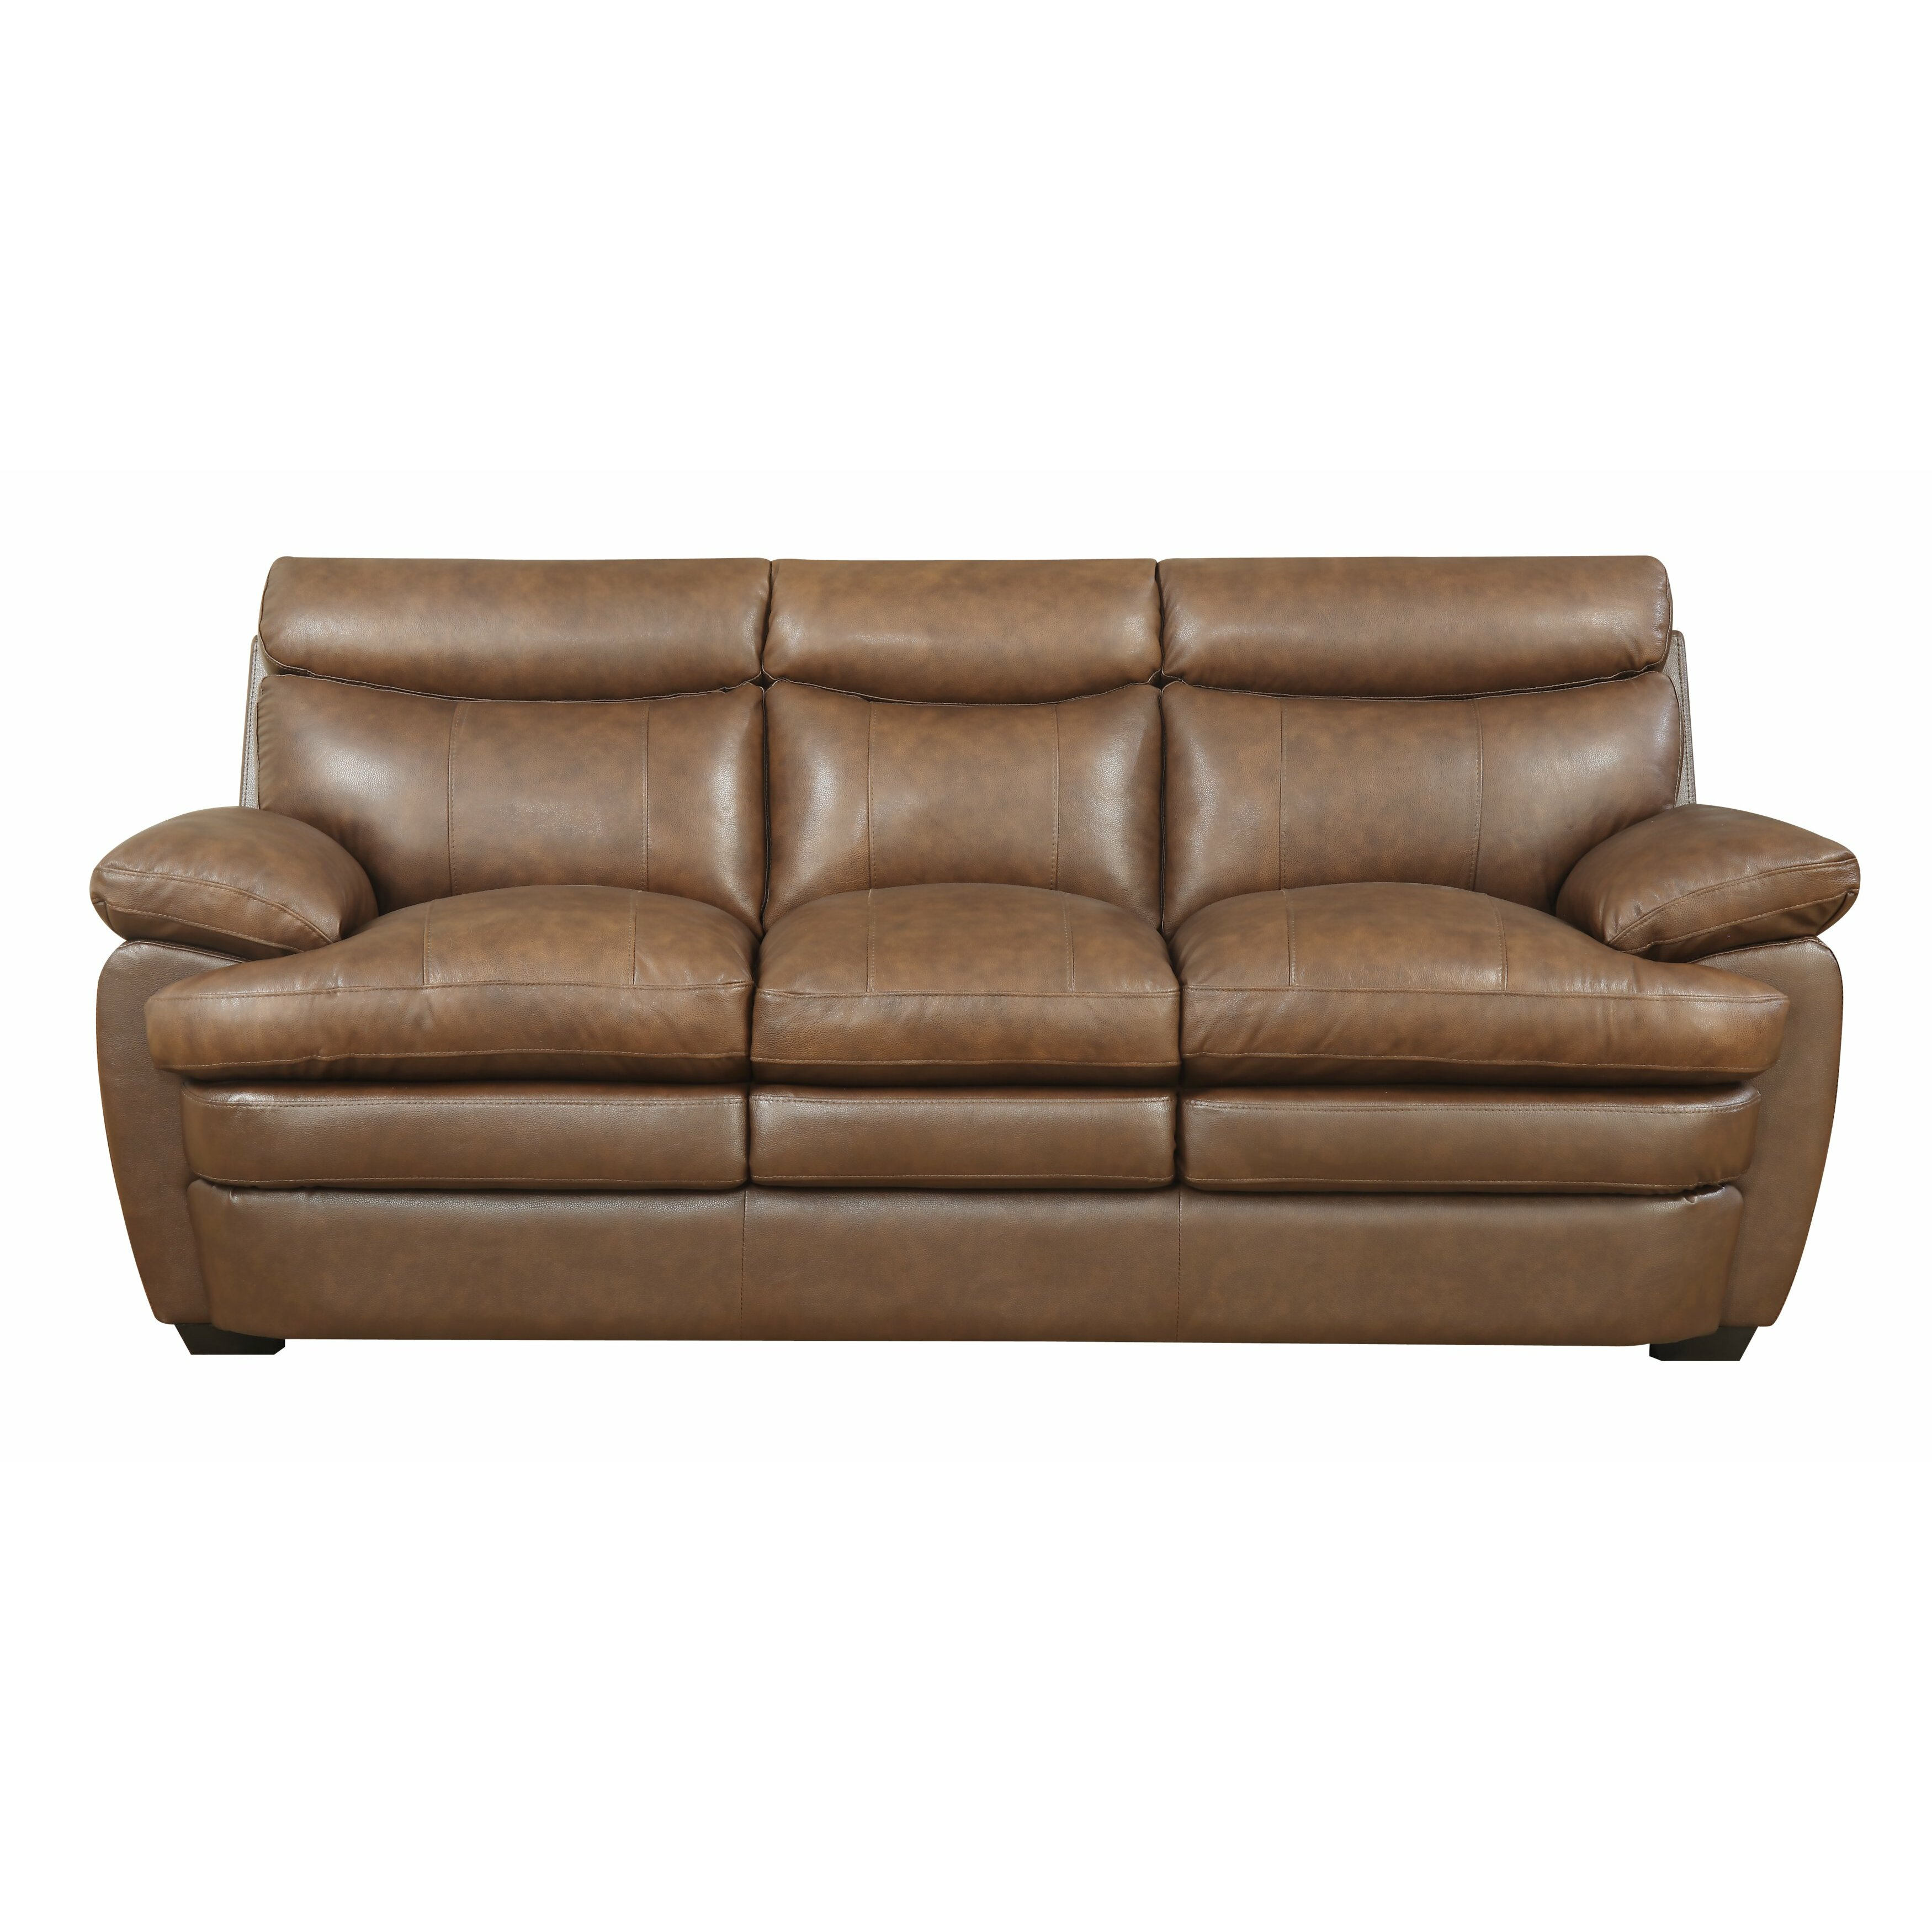 Darby Home Co Millwood Leather Sofa Reviews Wayfair